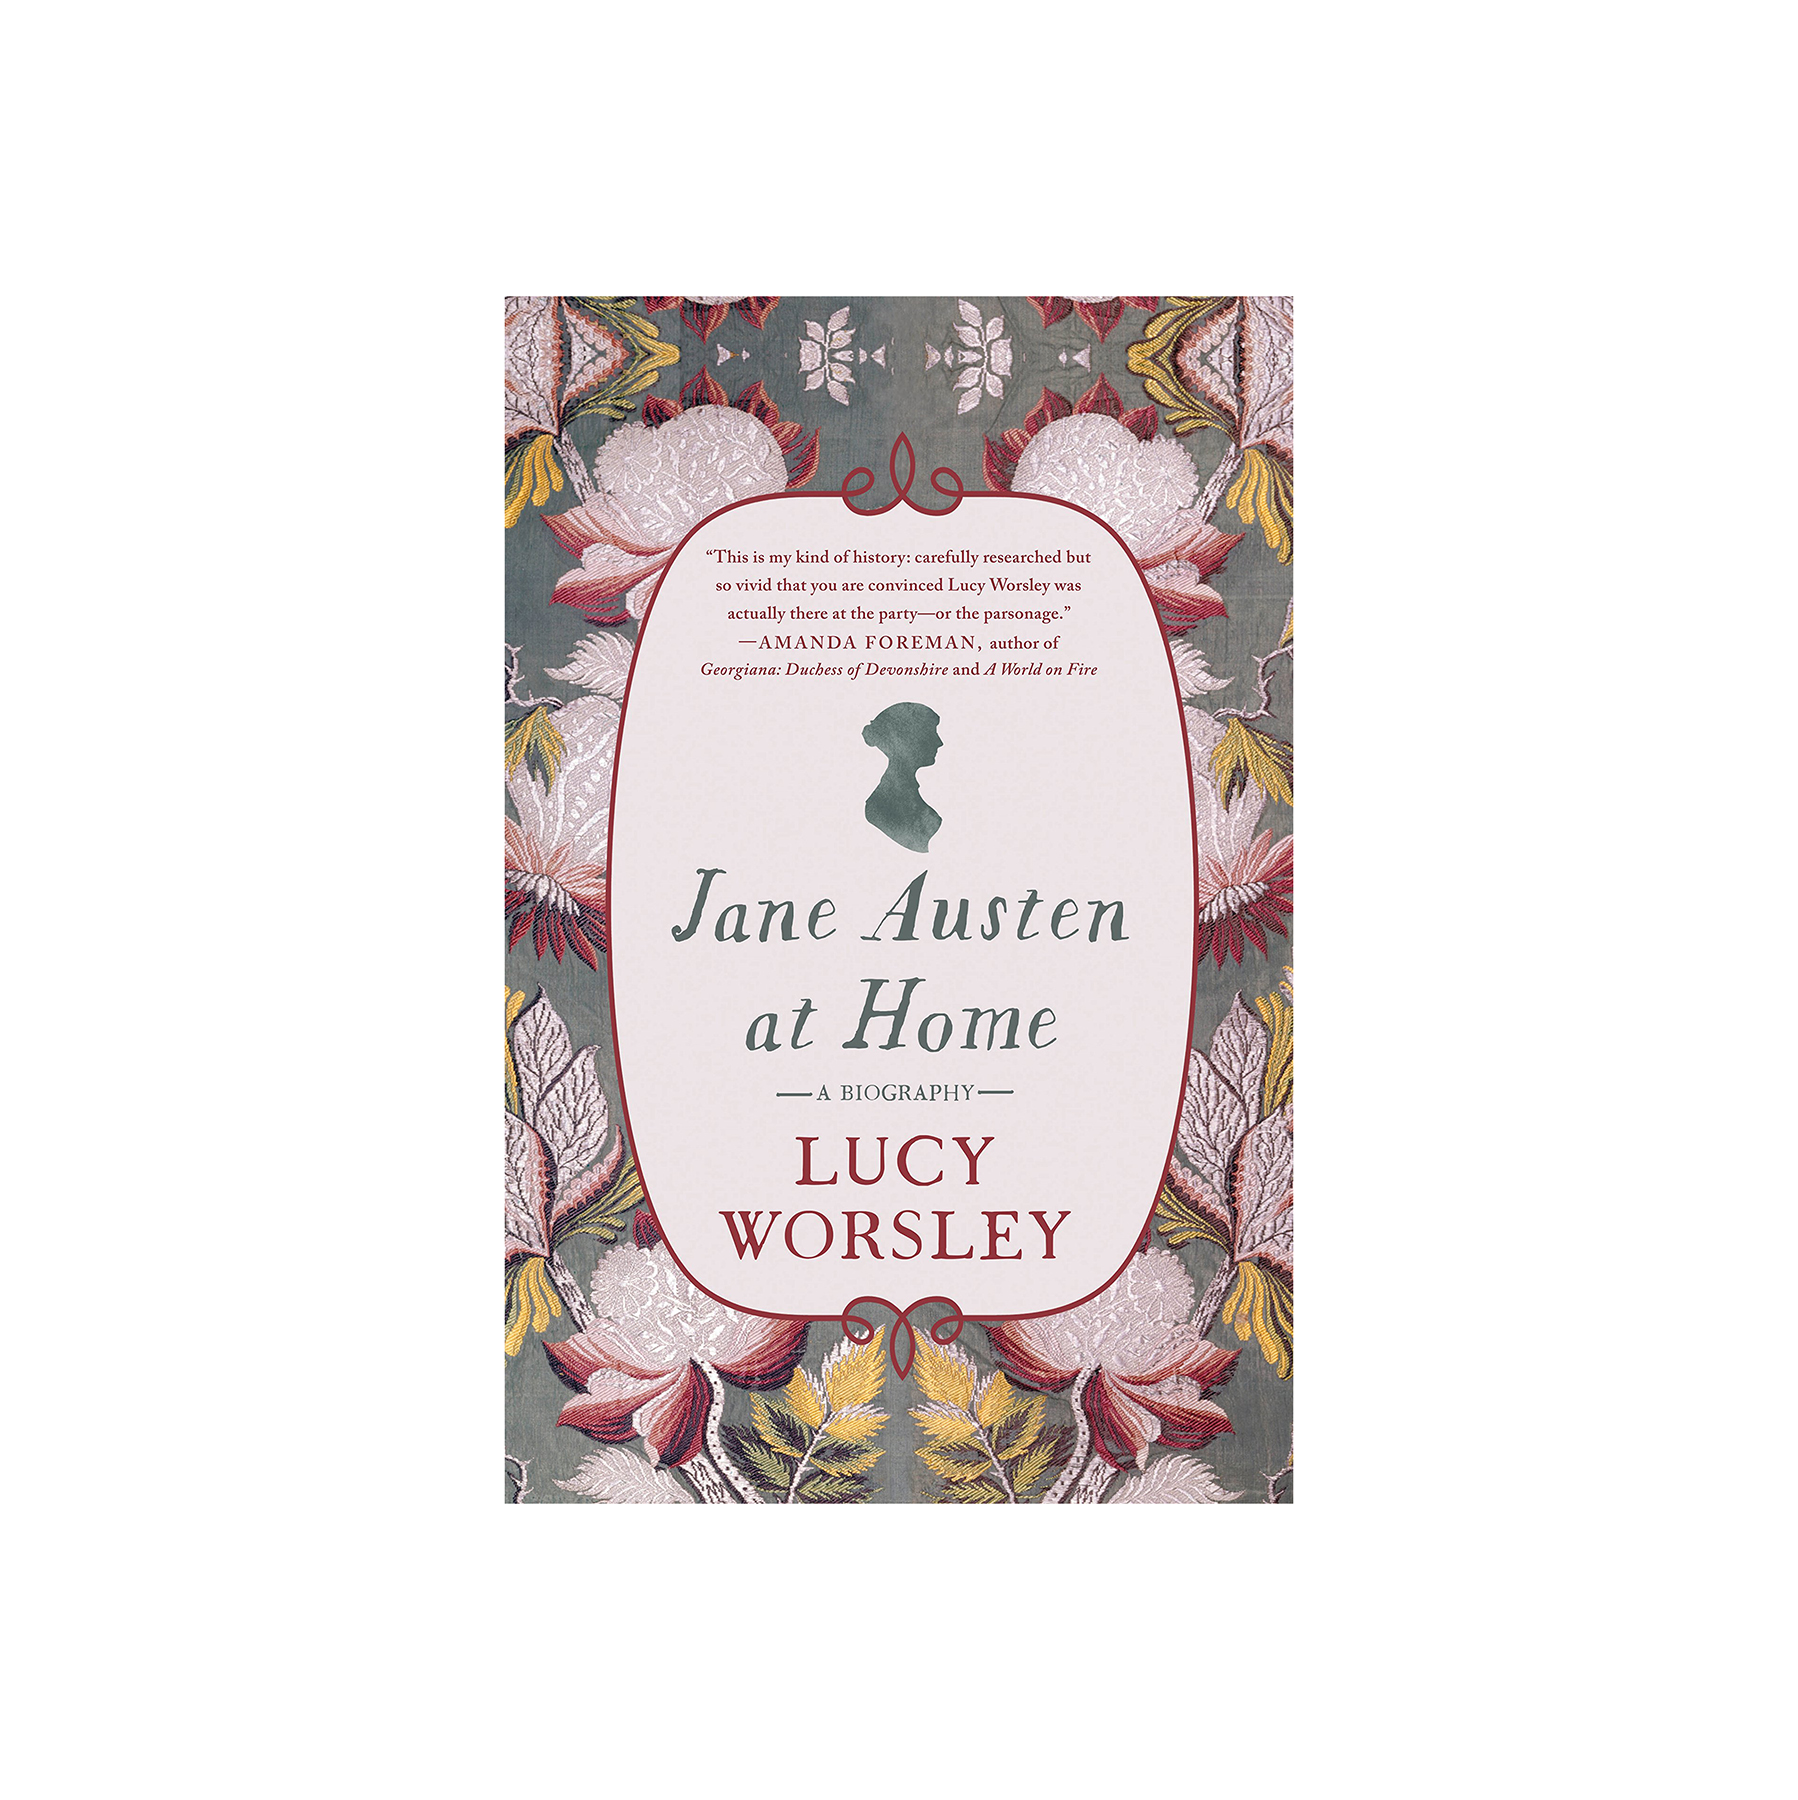 Jane Austen at Home: A Biography, by Lucy Worsley